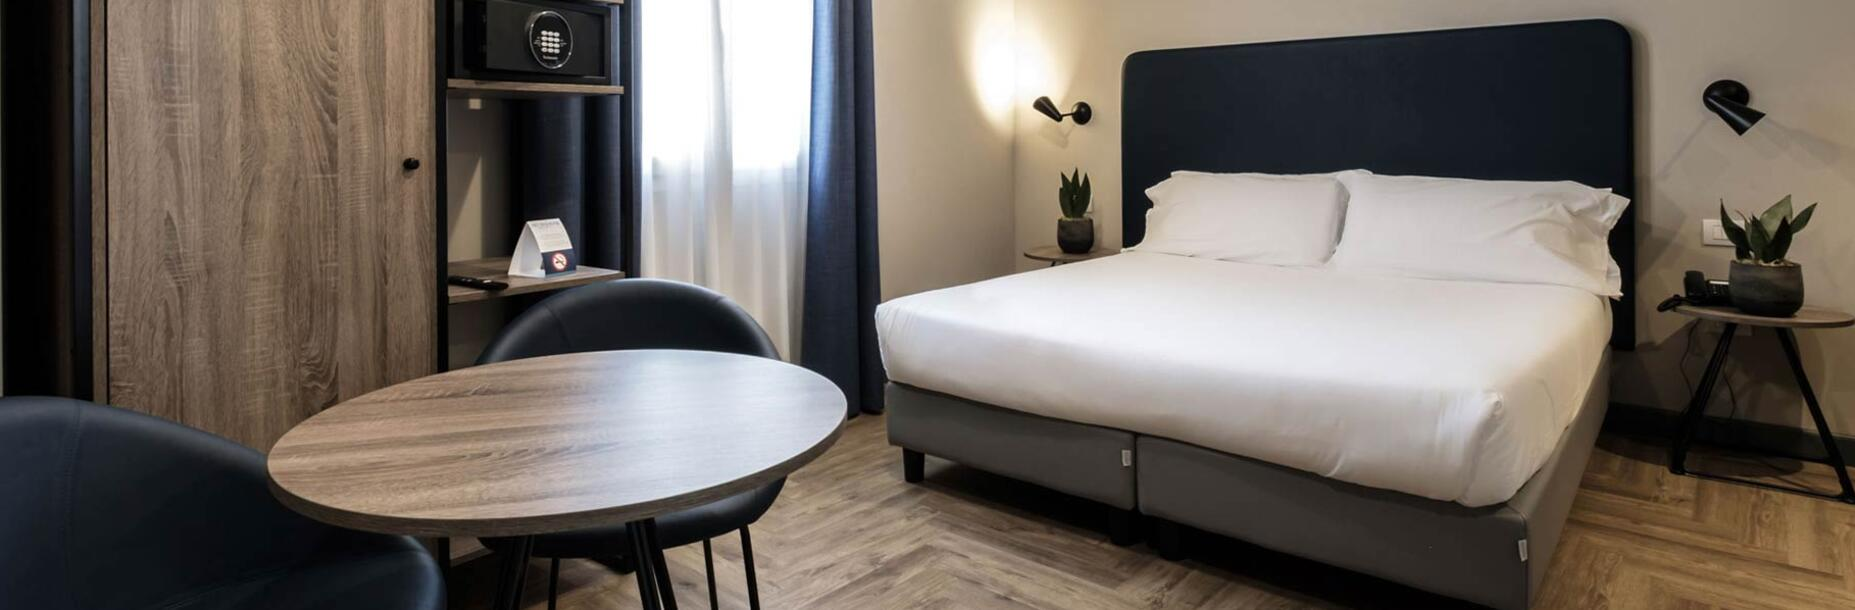 lory-hotel it camere 004